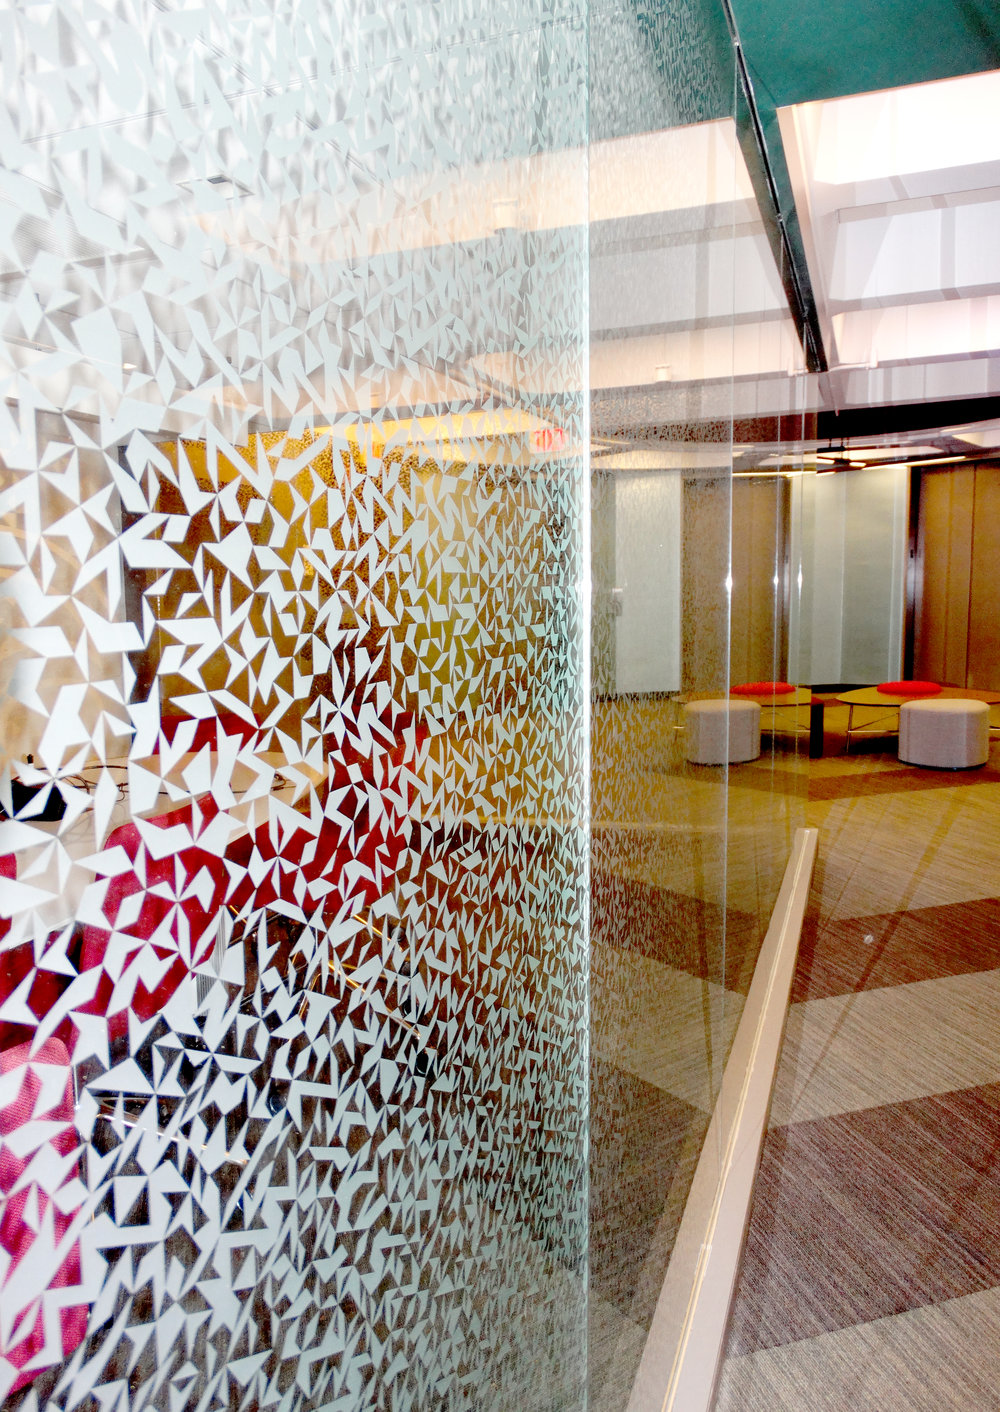 Illume Specialty Patterned Glass Wall - Spaceworks AI.jpg